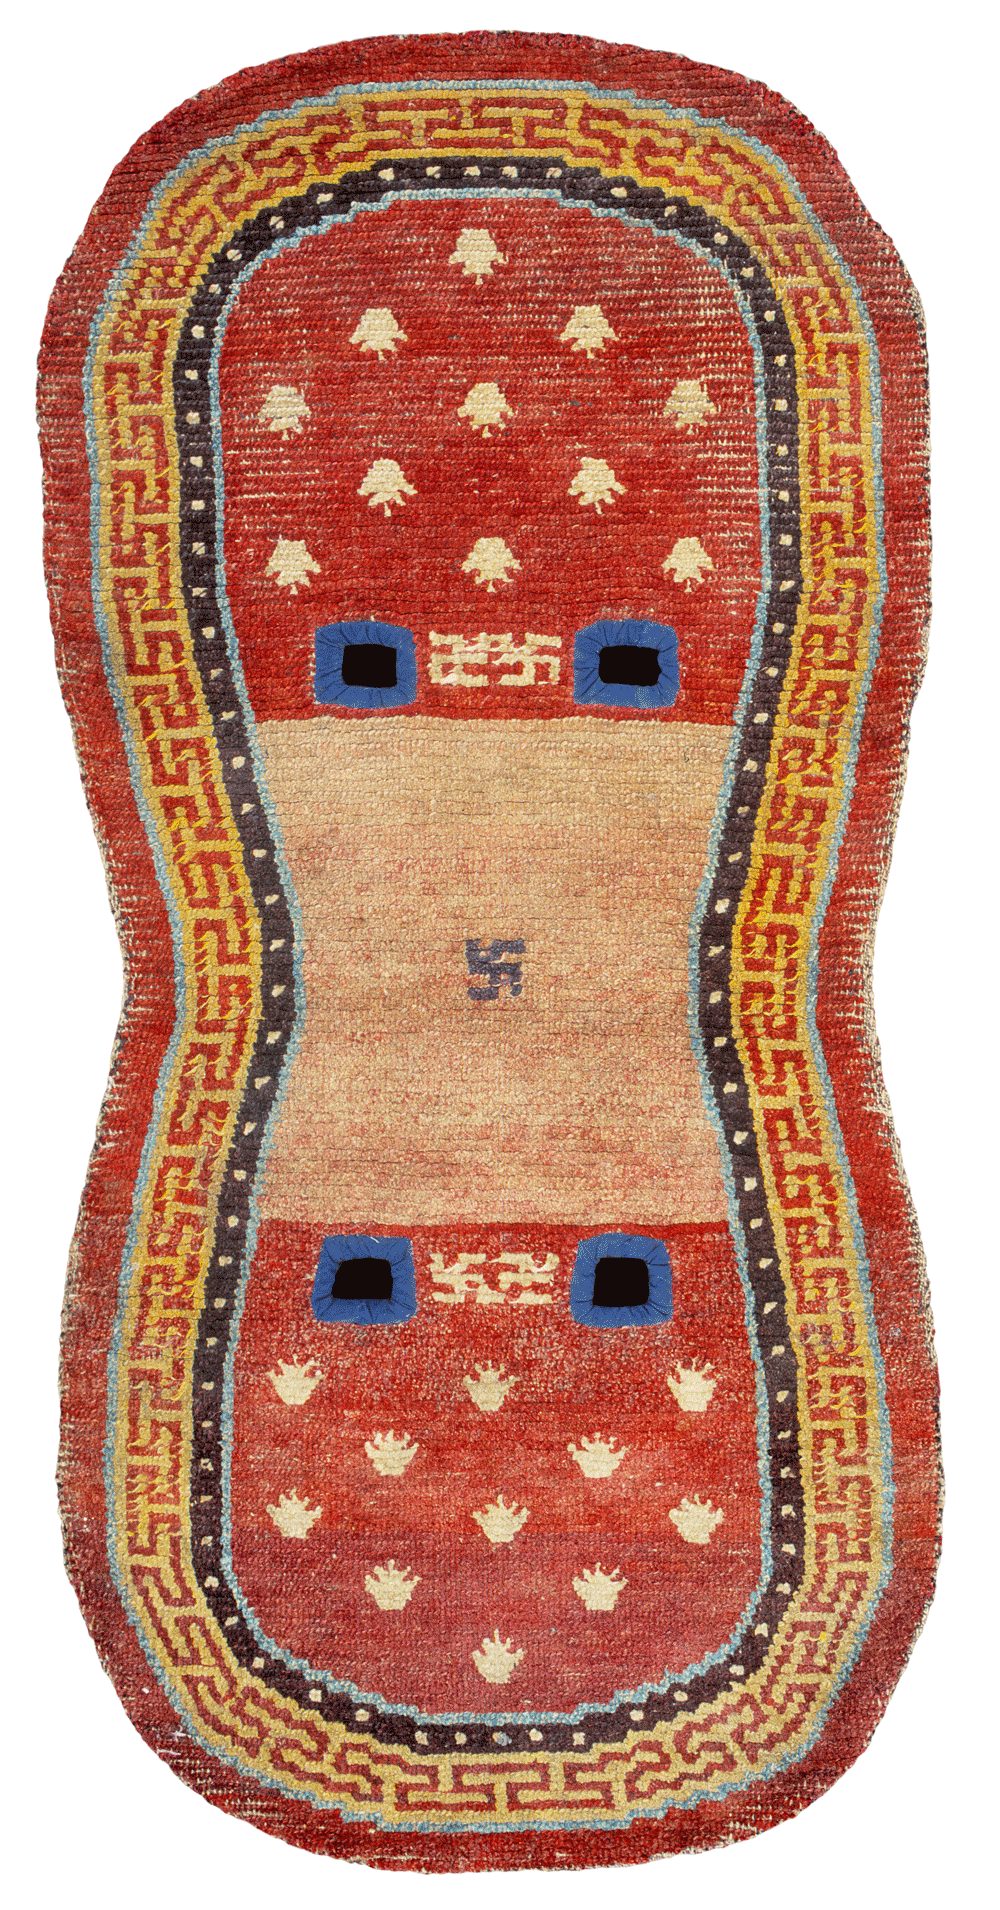 Tibetan rugs at Cologne Fine Art 2014, Saddle Rug with frog feet pattern, 19th century, 122 x 61 cm